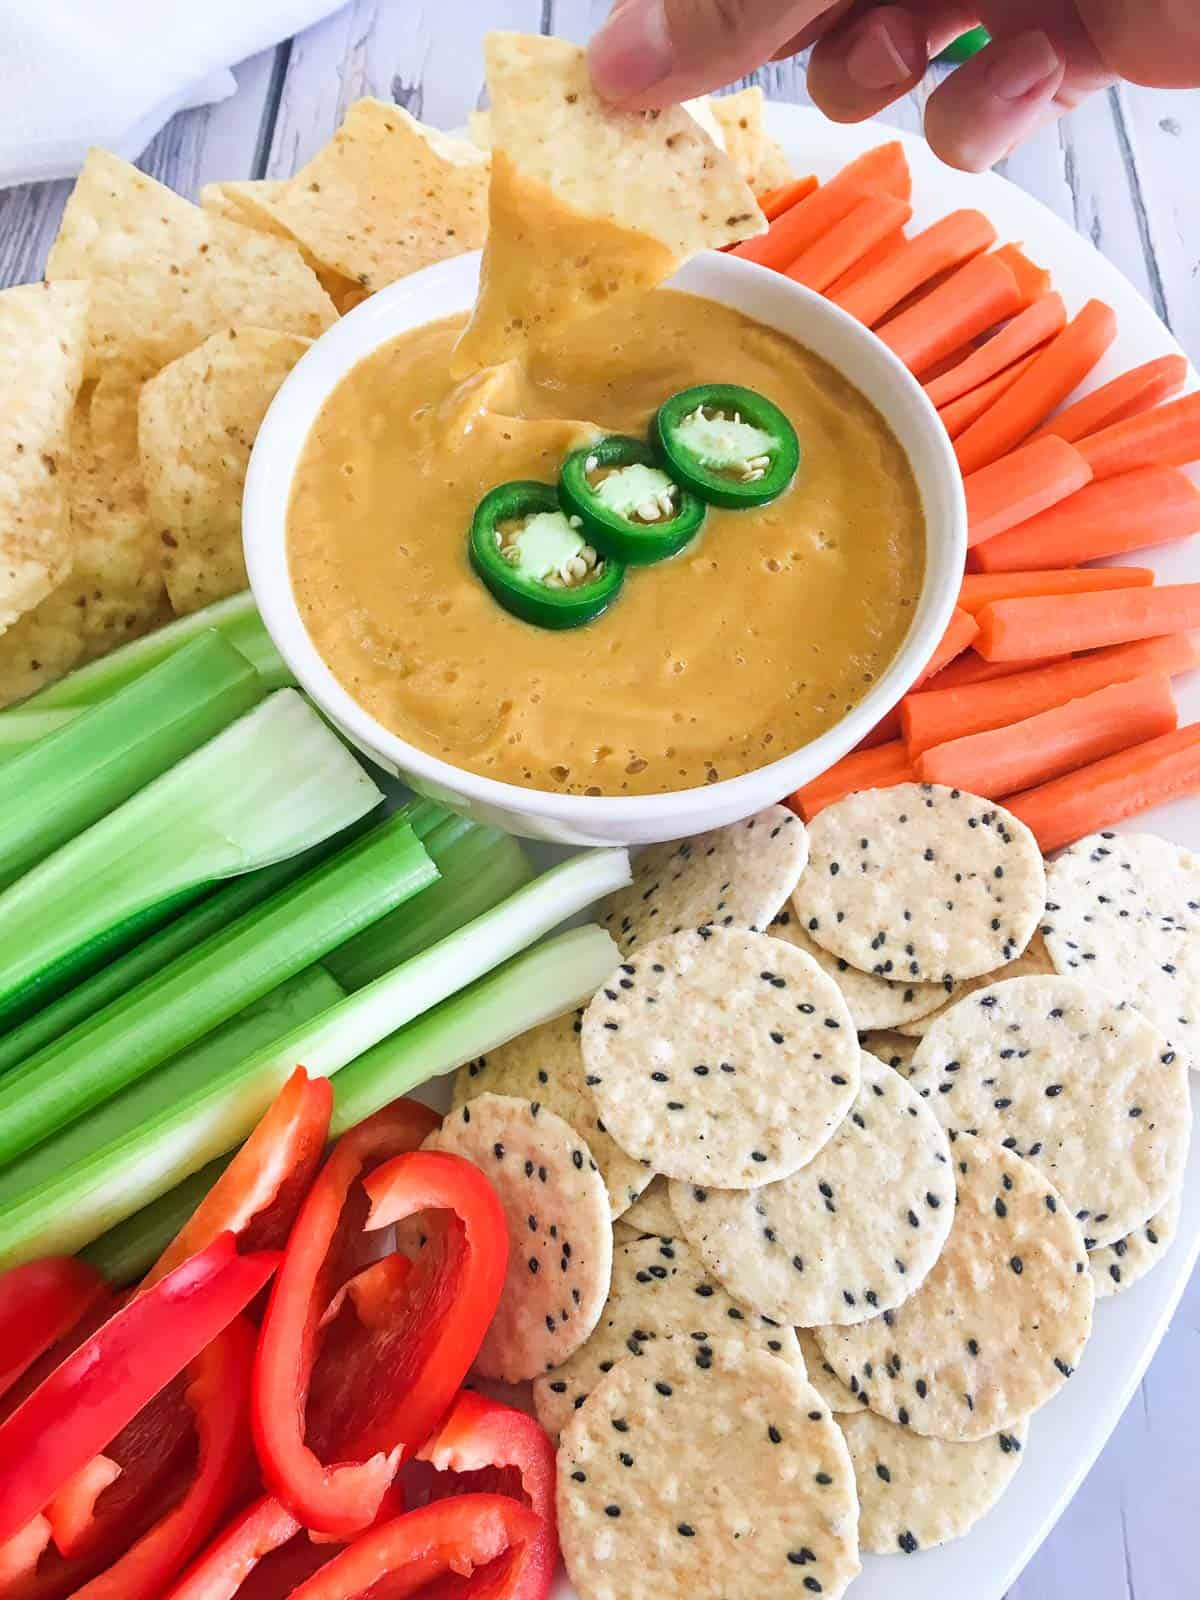 Tortilla chip dunked into cheese dip resting in white bowl with veggies and chips around the bowl.